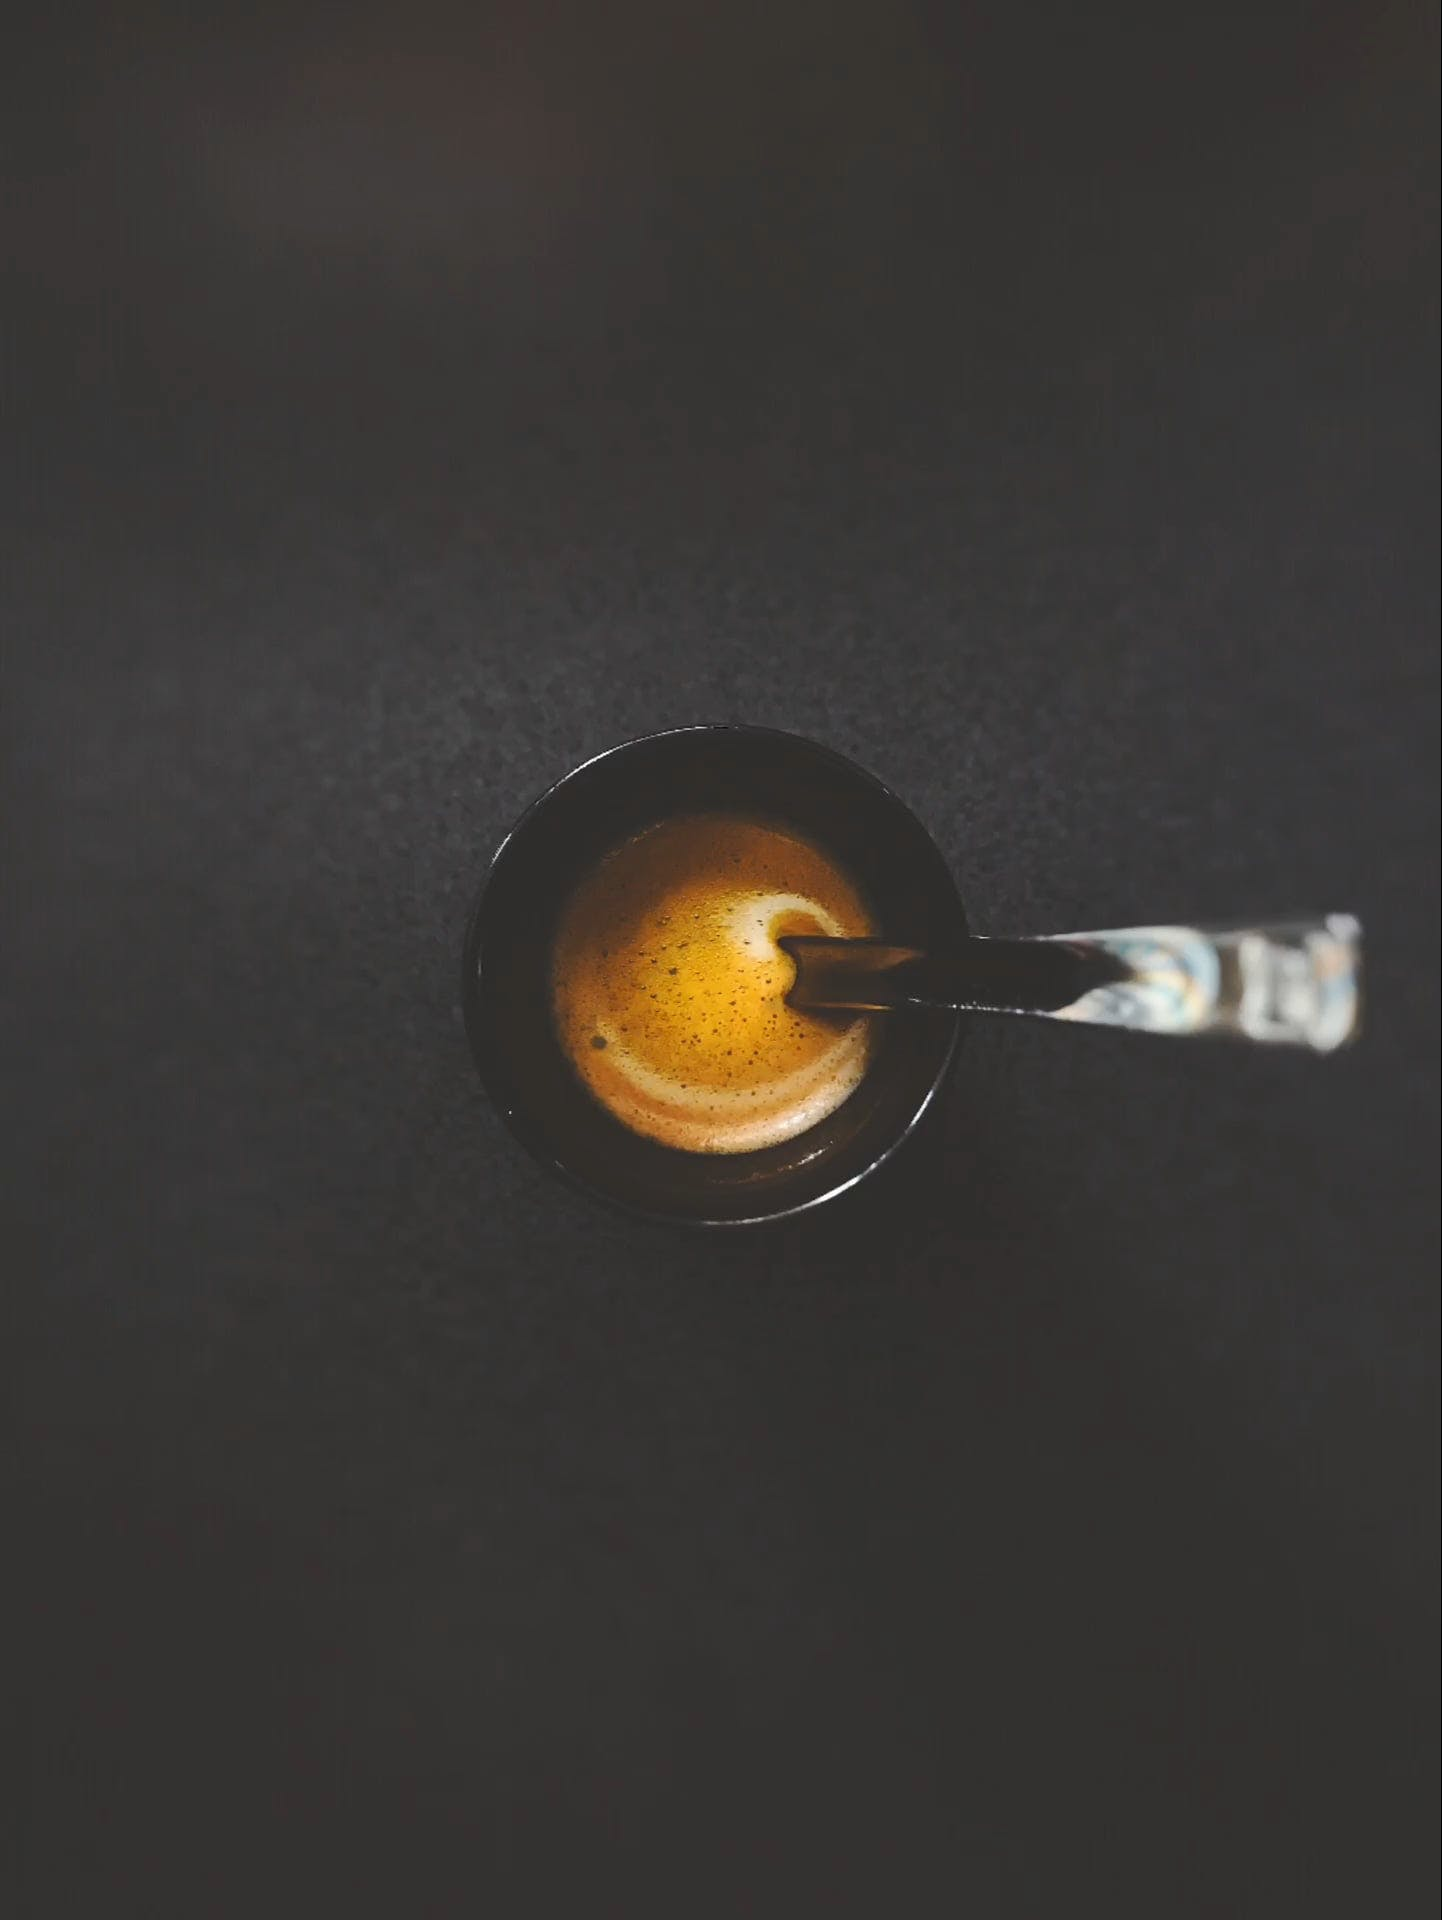 Cinemagraph of a Coffee